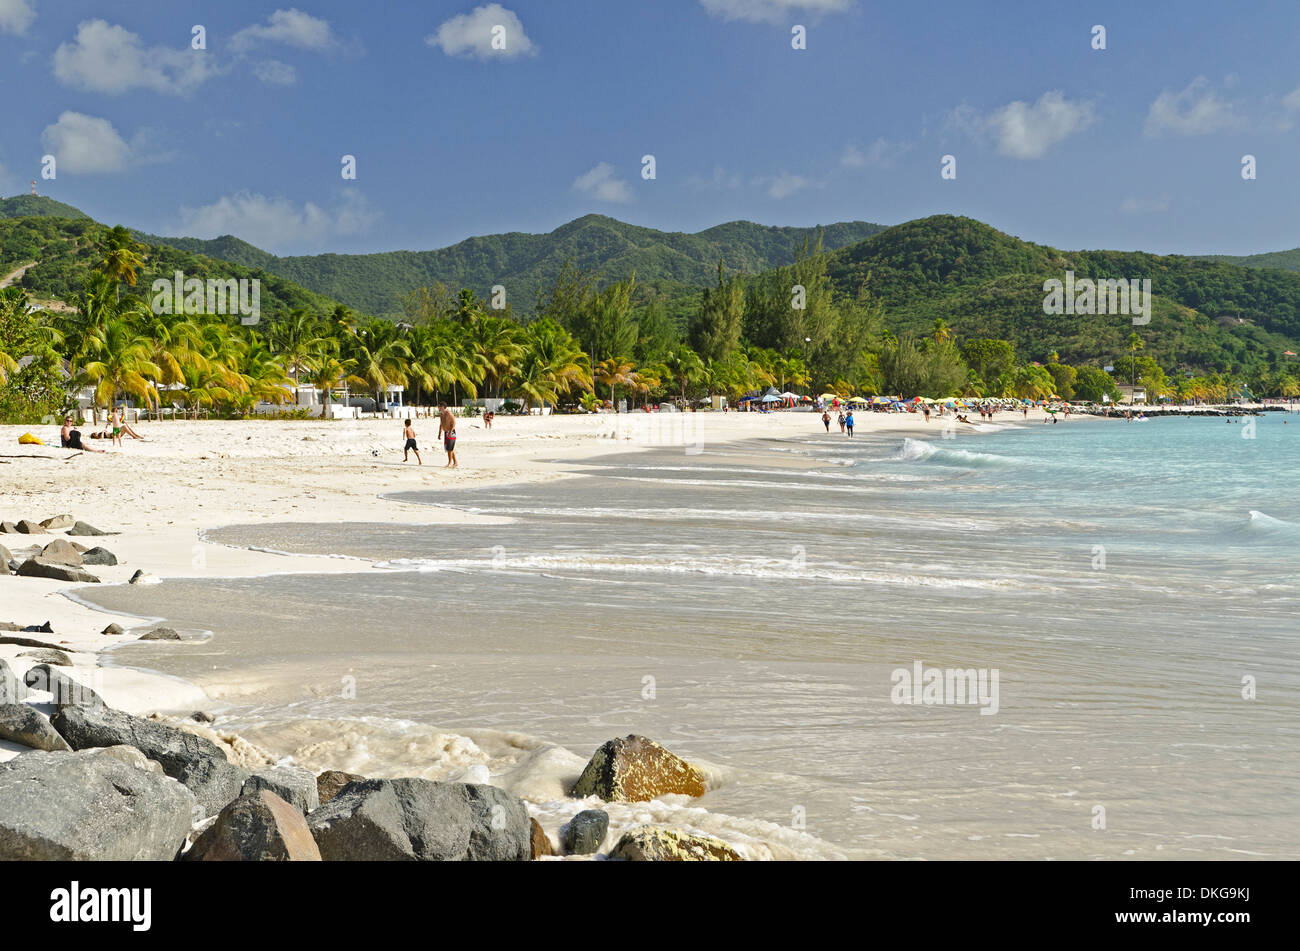 Jolly Beach, Antigua y Barbuda, Antillas, el Caribe, América Imagen De Stock